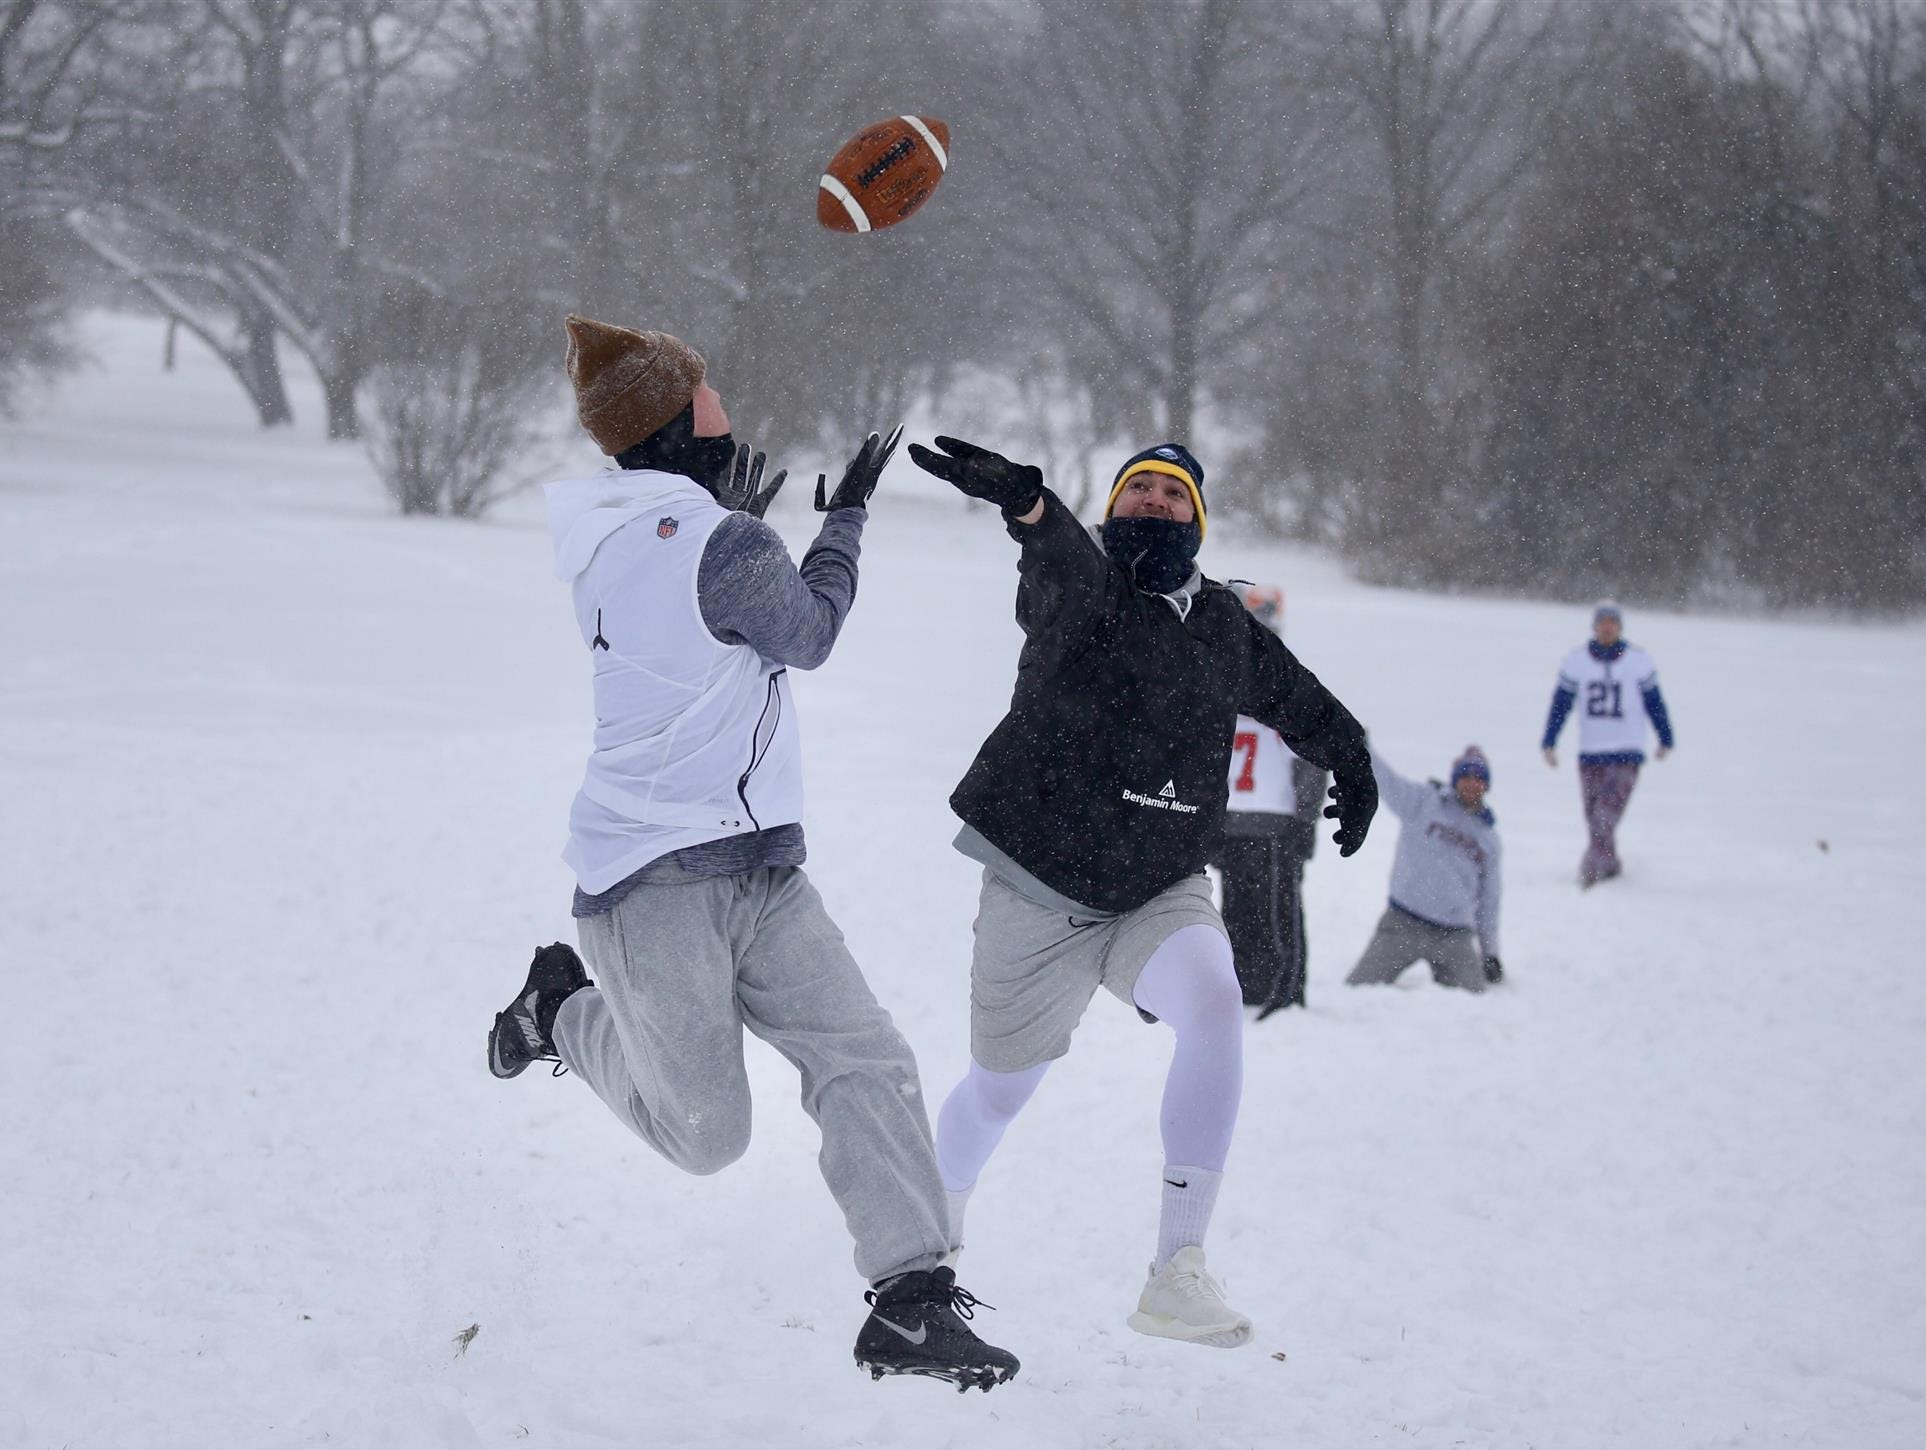 The frigid temperatures and heavy snowfall didn't stop a group of friends from playing football at Cobbs Hill Park. Connor O'Dell gets behind Nick Polisseni for a TD catch.